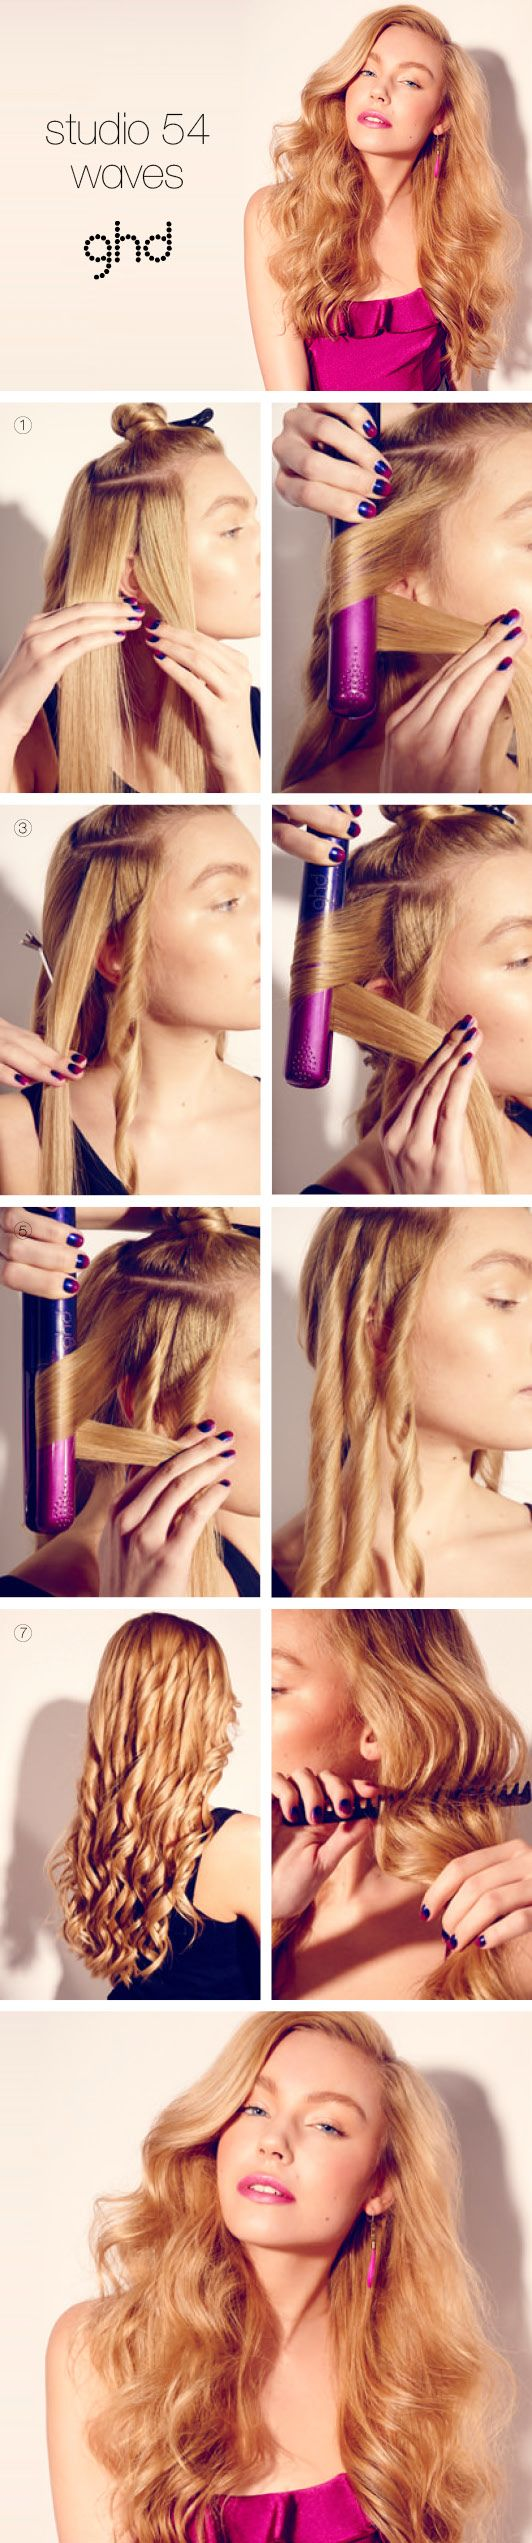 How to hairstyles soft curls  GUIDA STEP-BY-STEP: STUDIO 54 WAVES  Crea onde vaporose per CAPELLI SUPER GLAMOUR.